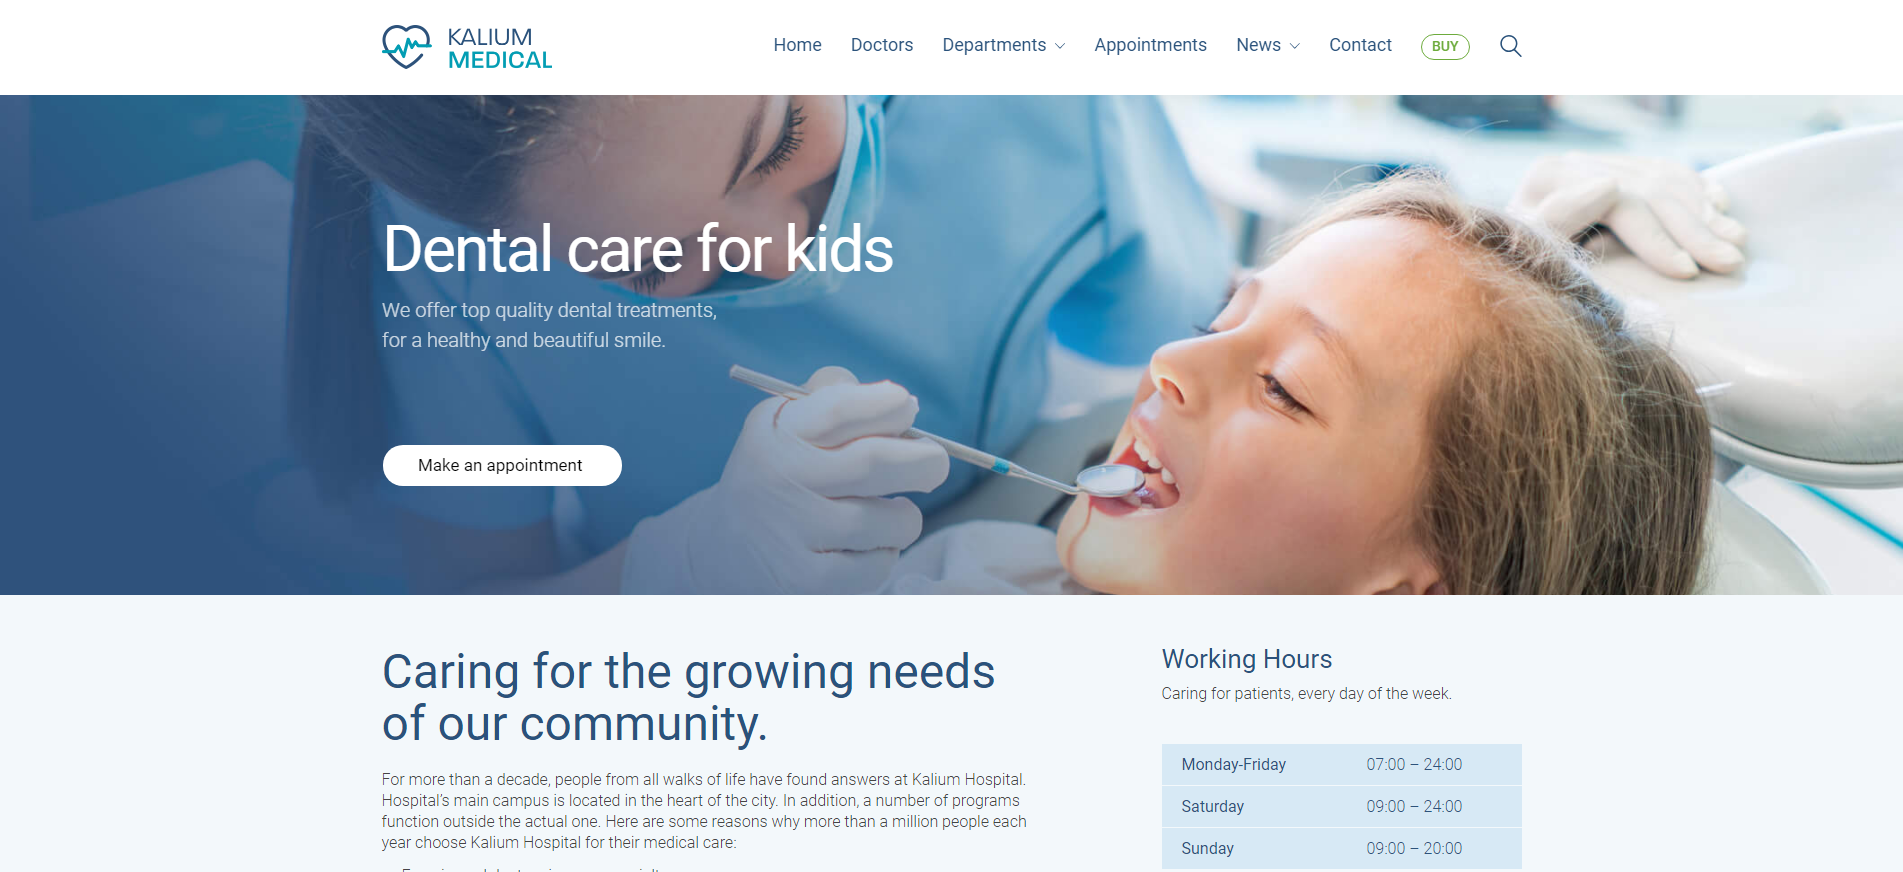 Bild von Wordpress Theme Kalium Medical